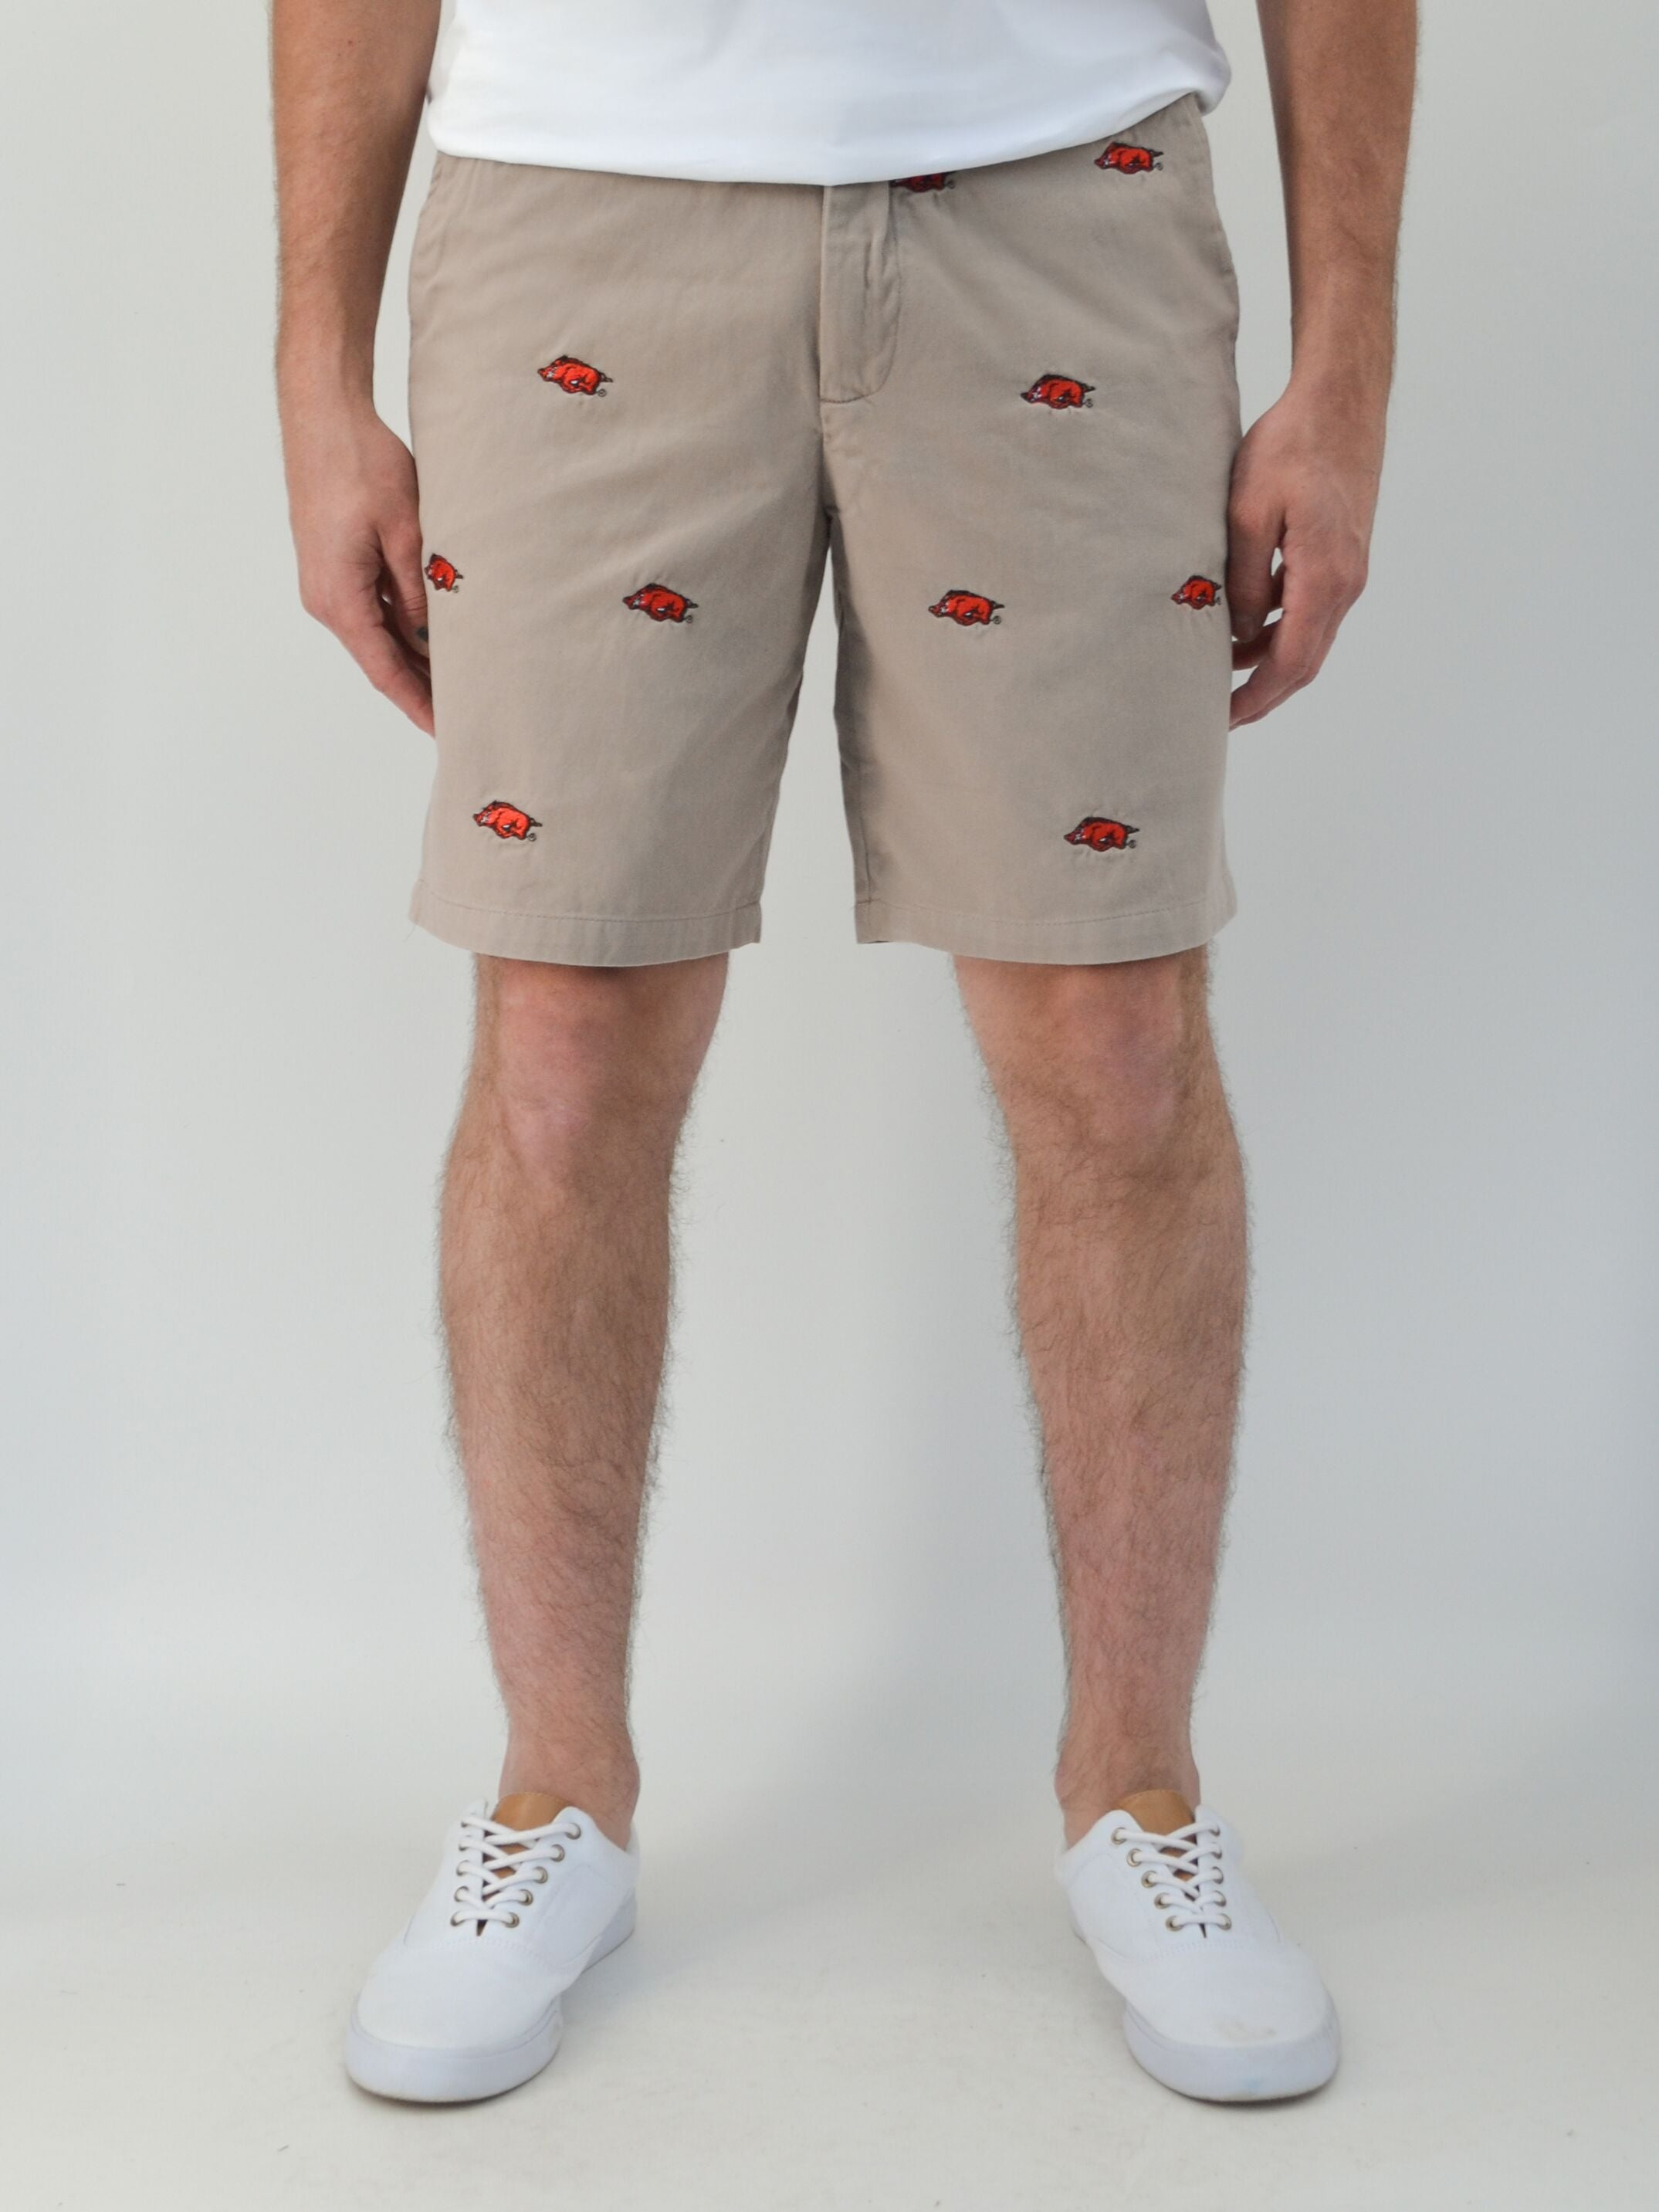 Arkansas Razorback Khaki Shorts